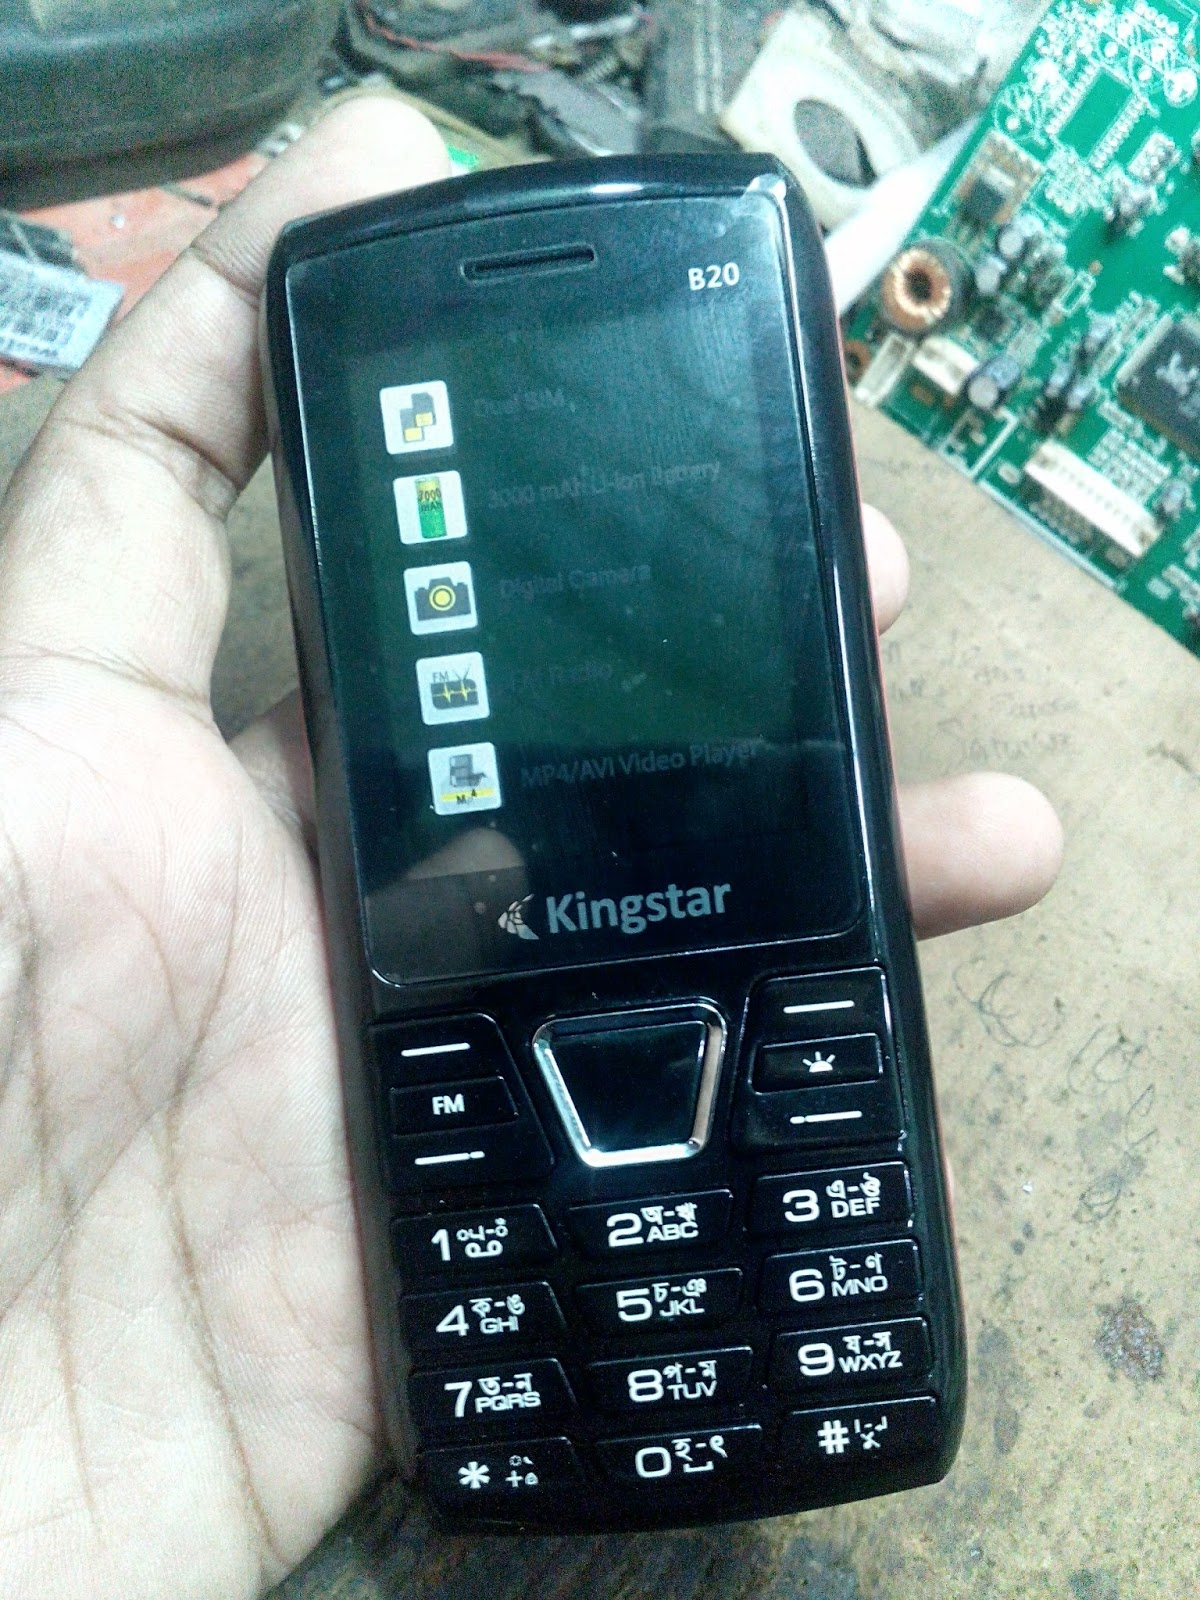 Kingstar B20 Flash File Without password